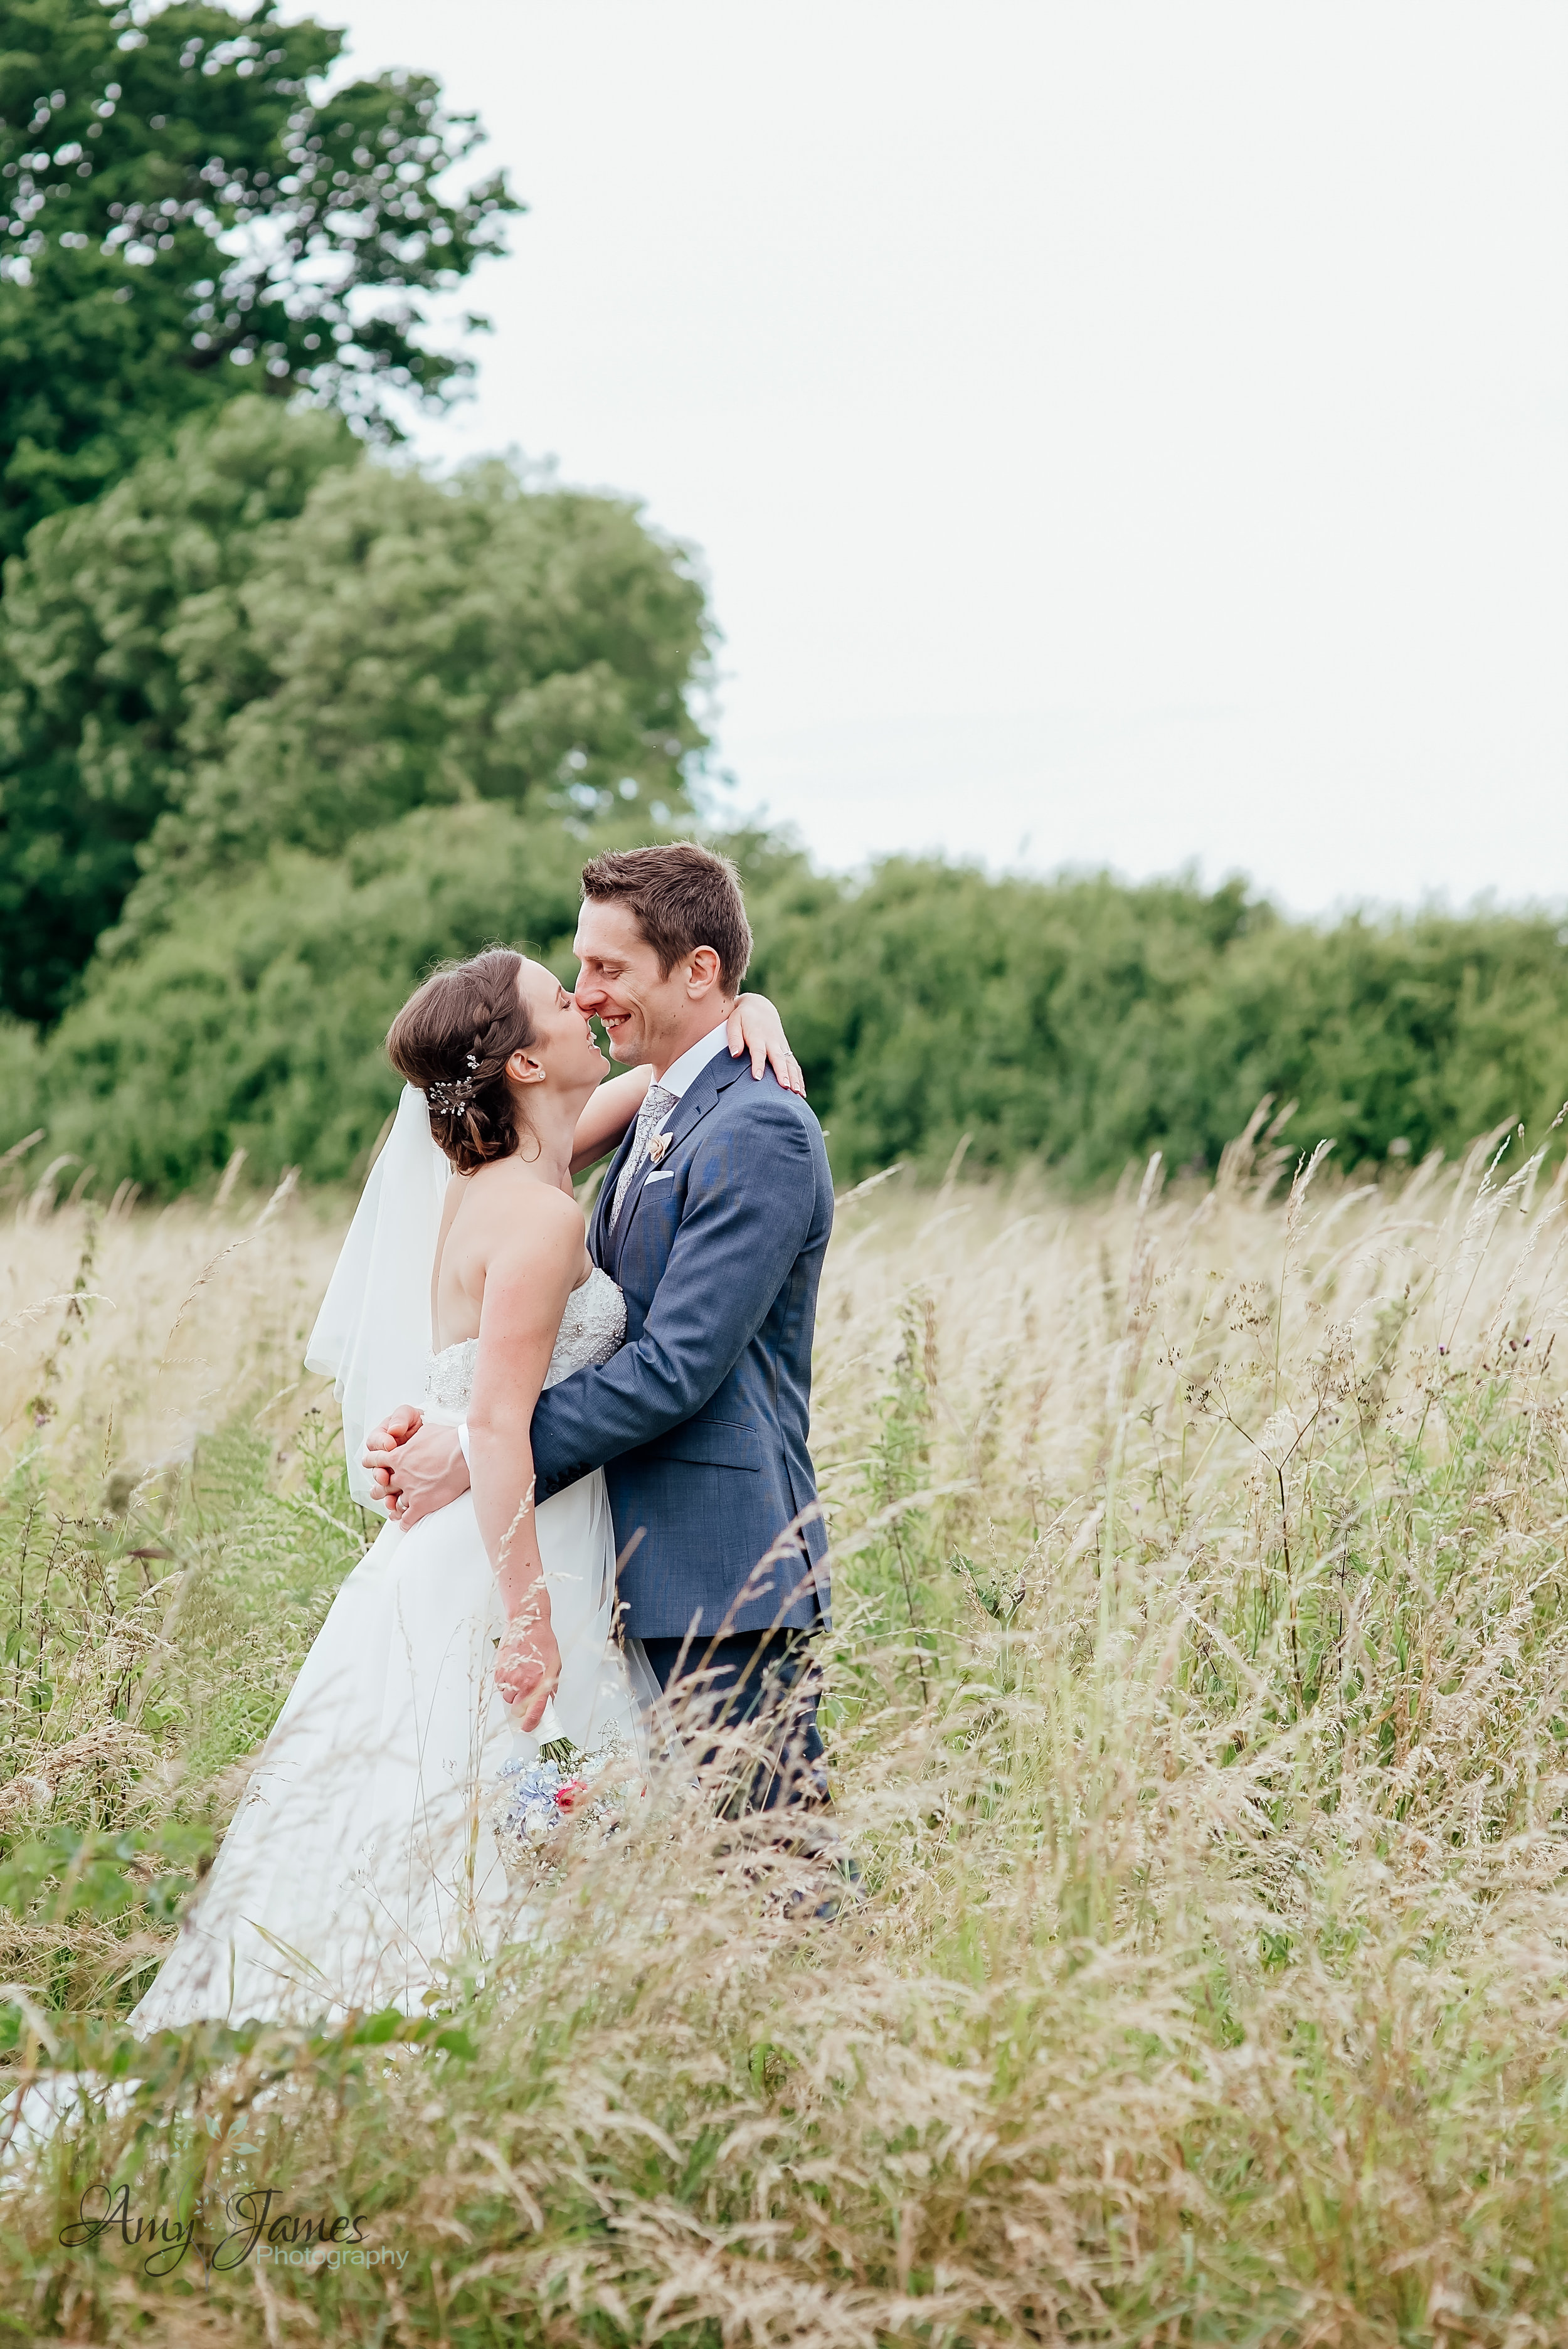 Bride and Groom in field at outdoor wedding venue Hampshire by Amy James Photography Hampshire Wedding Photographer - Taplins Place Wedding